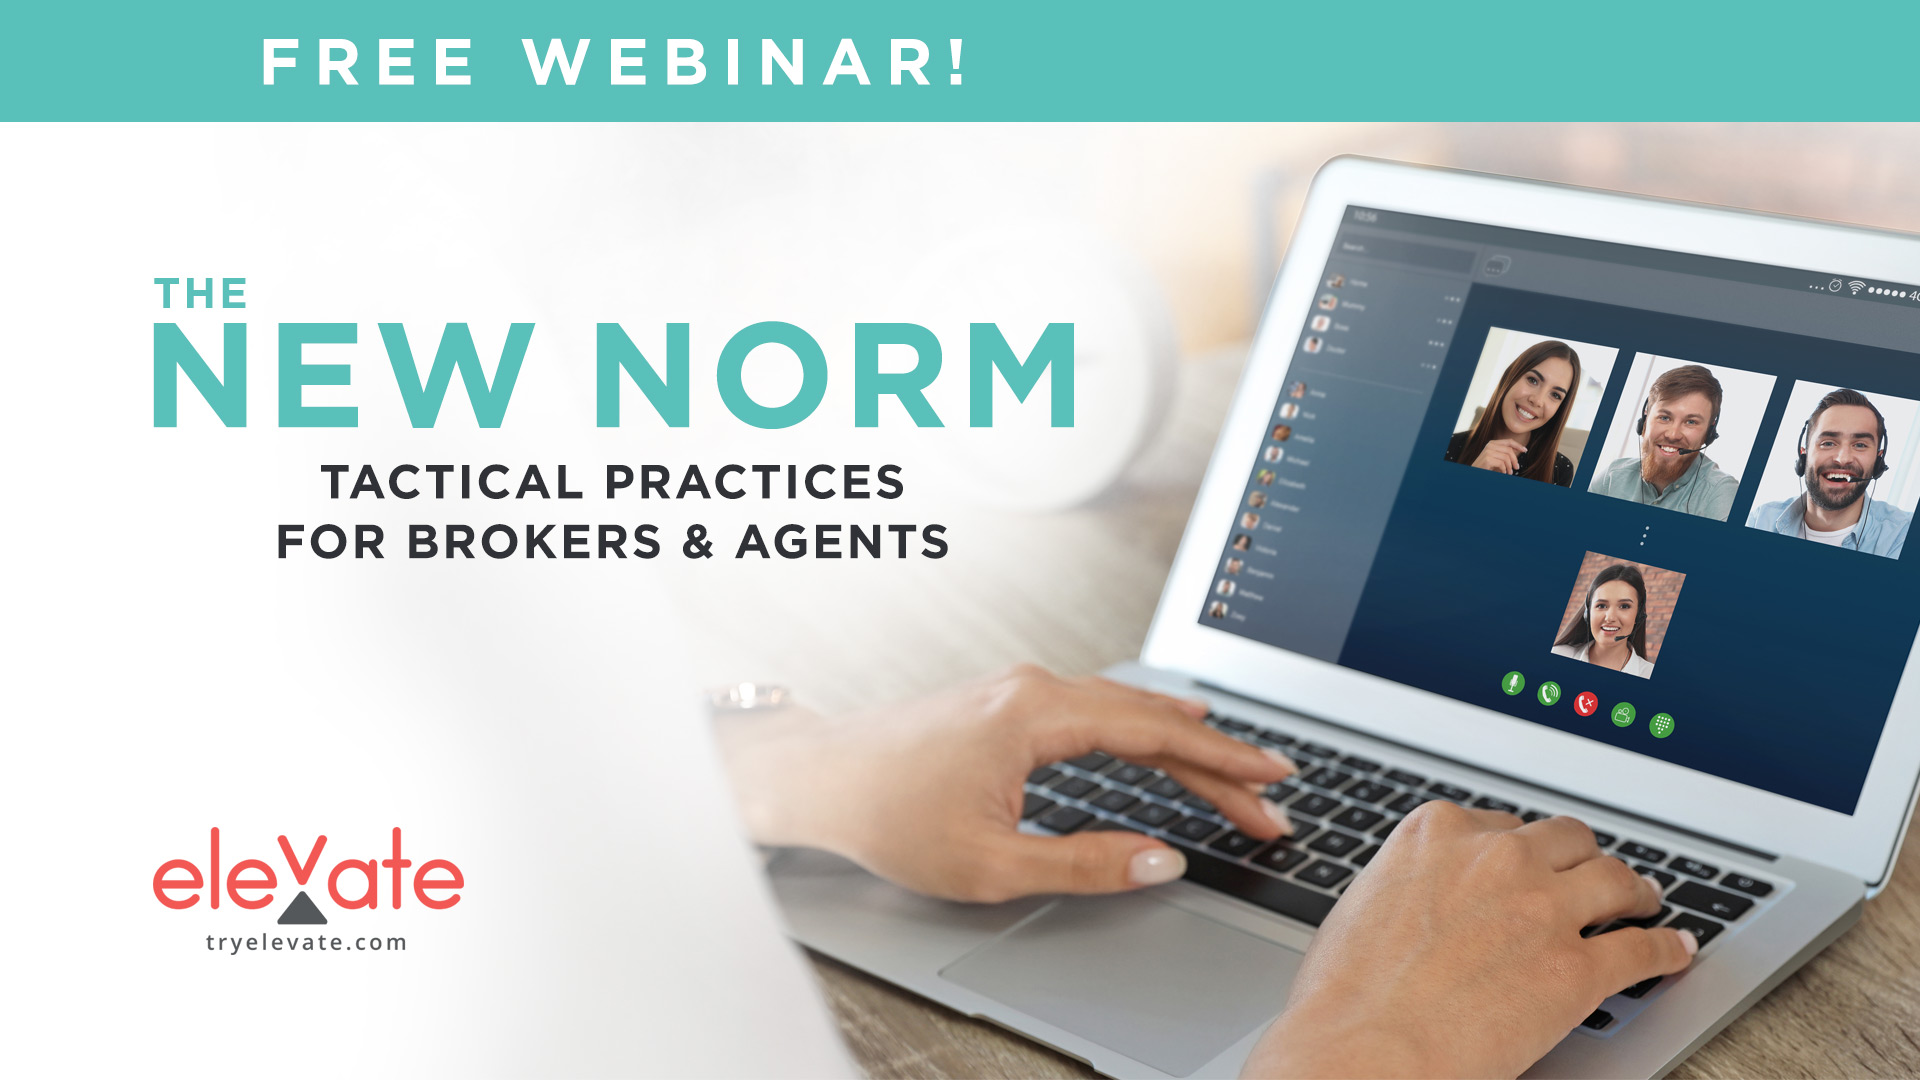 The New Norm: Tactical Practices for Brokers & Agents